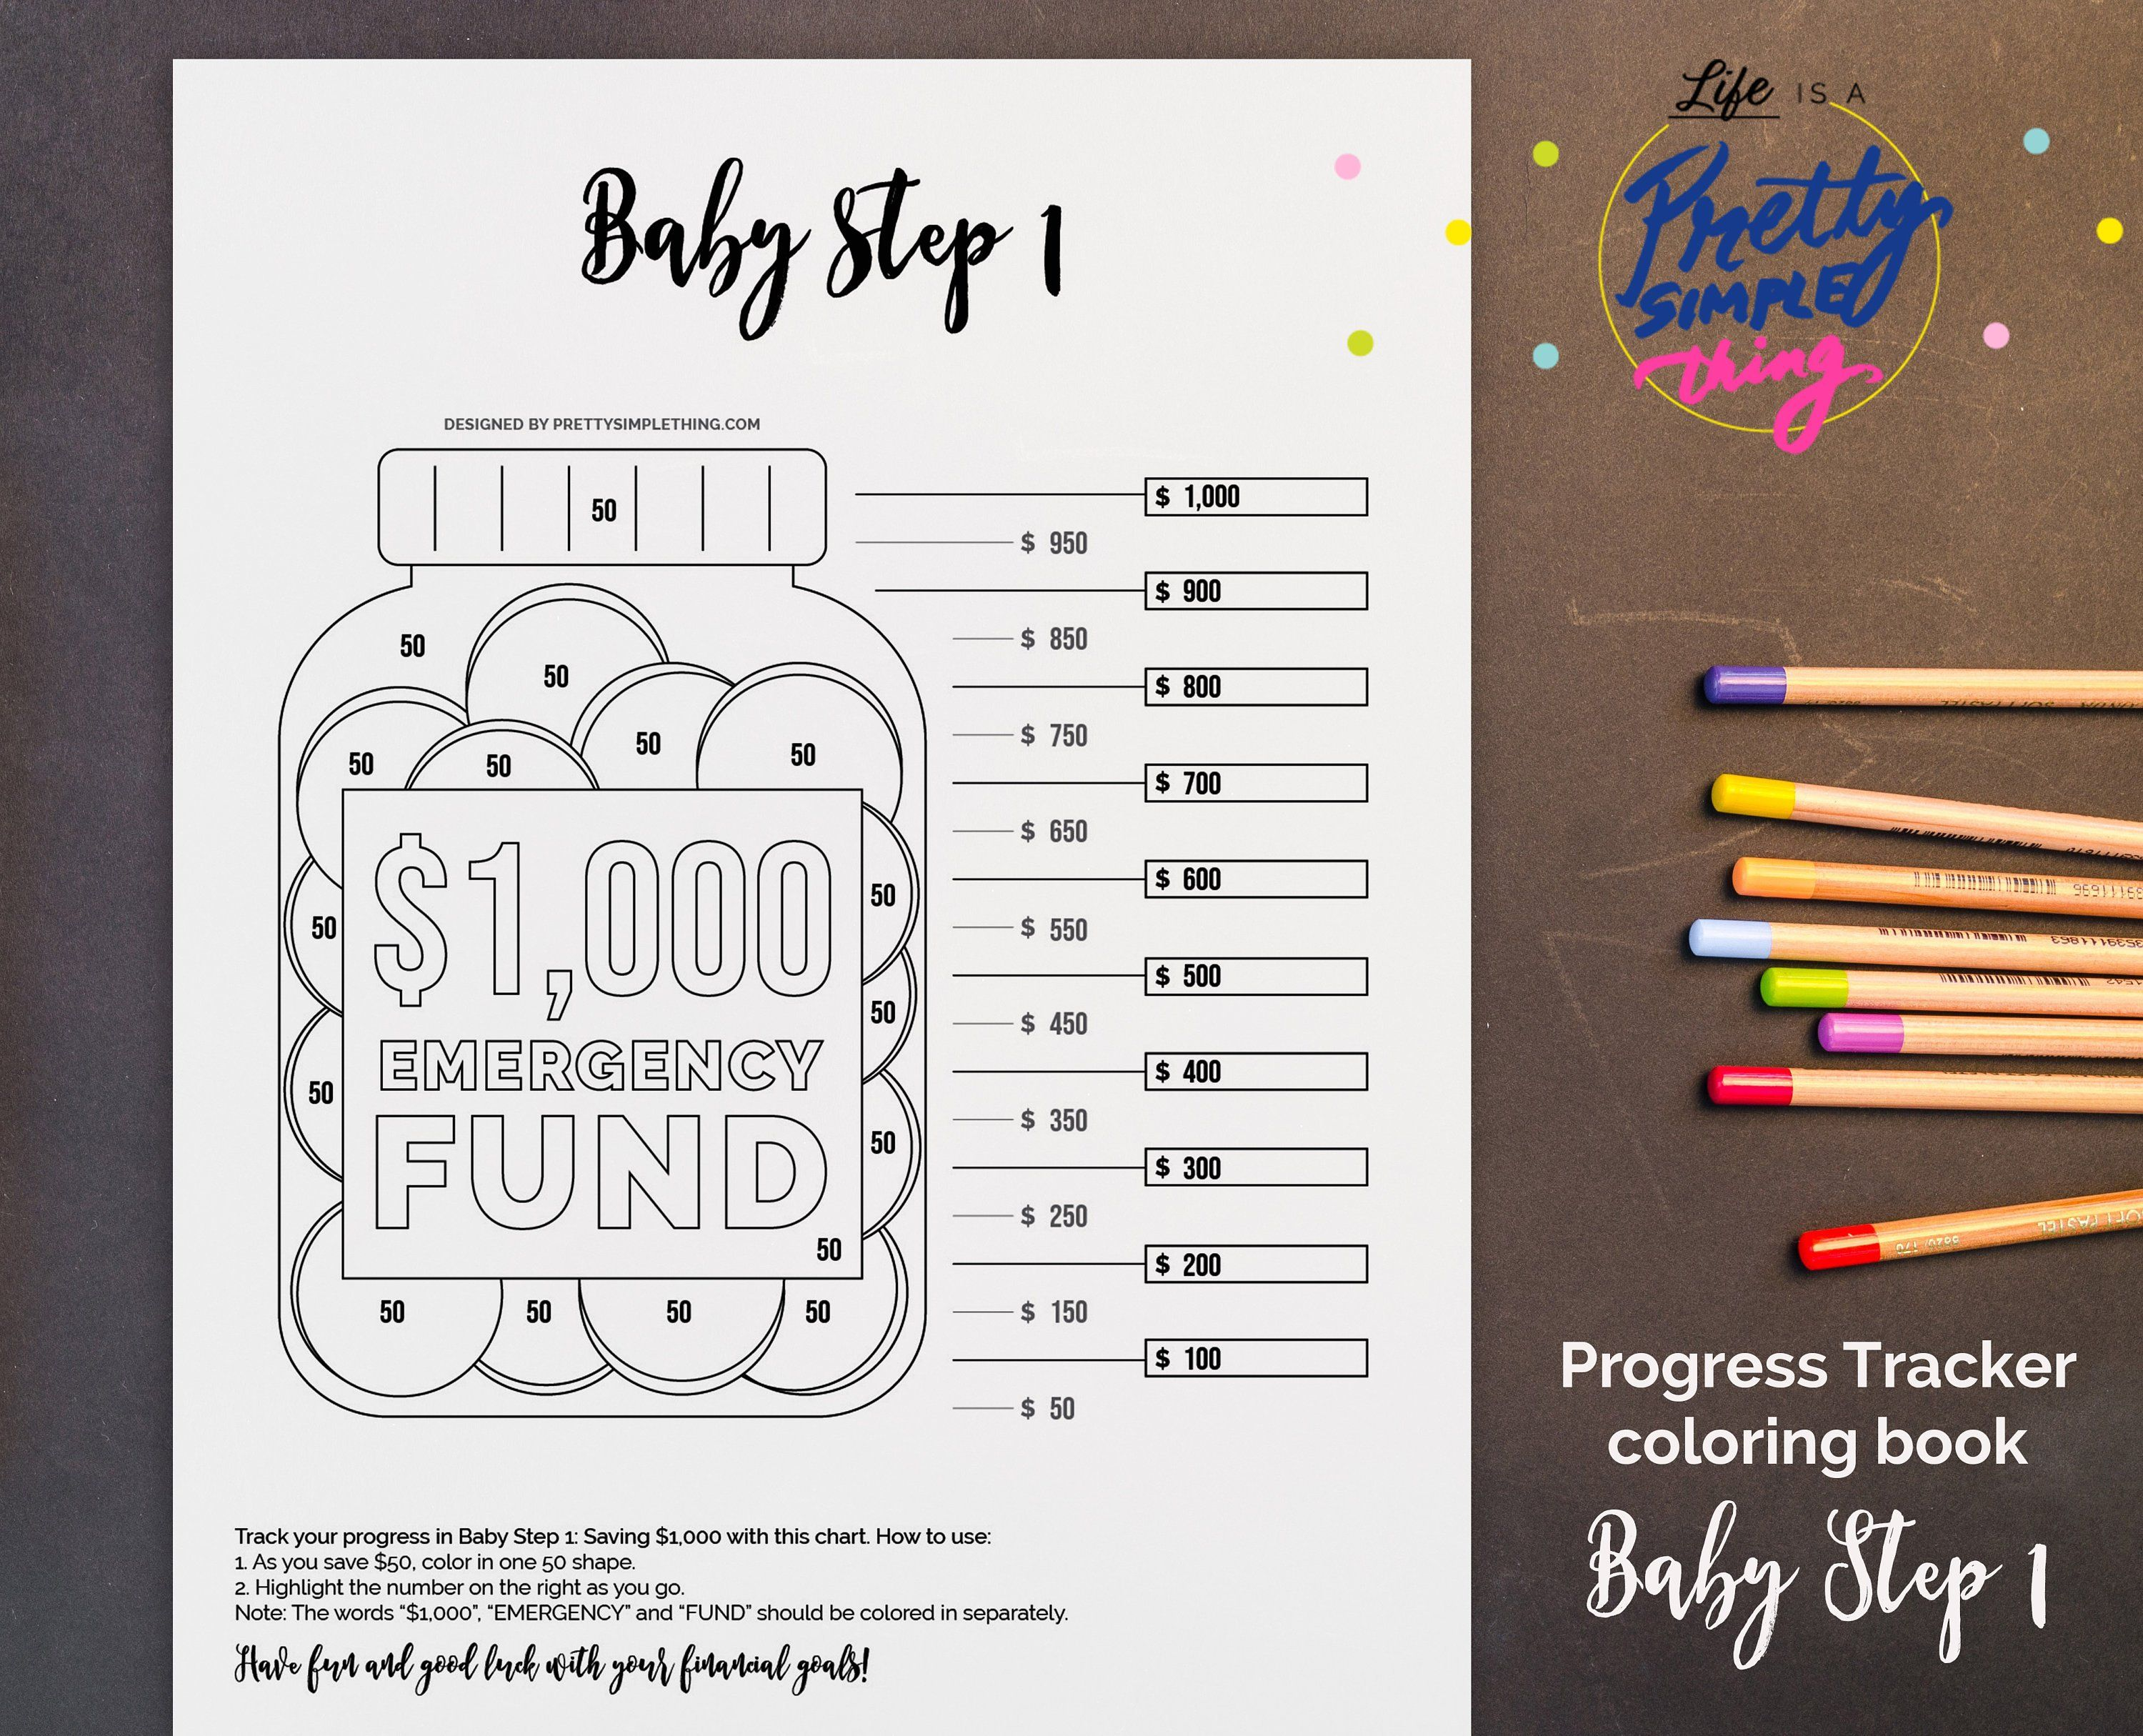 1000 Emergency Fund Baby Step 1 Progress Tracker Coloring Page